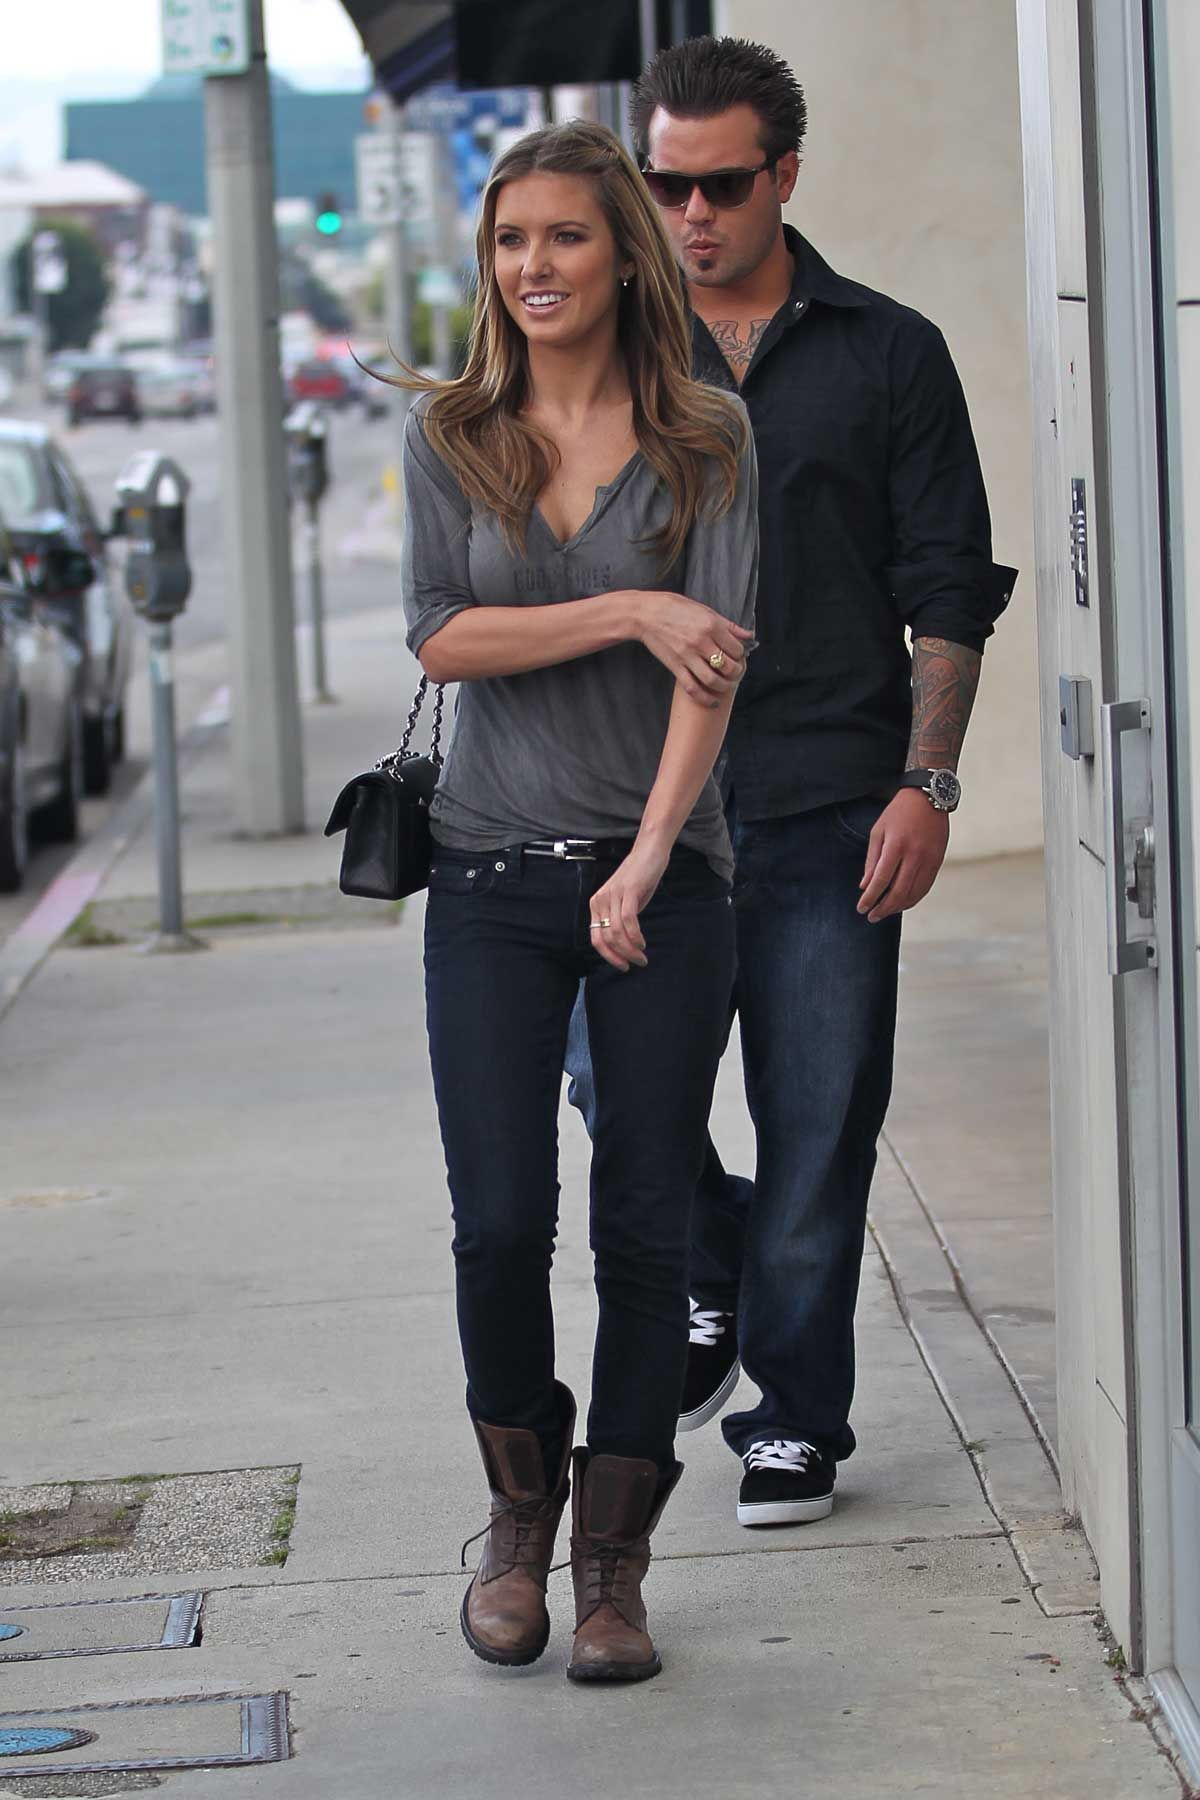 Rather valuable Audrina patridge skinny